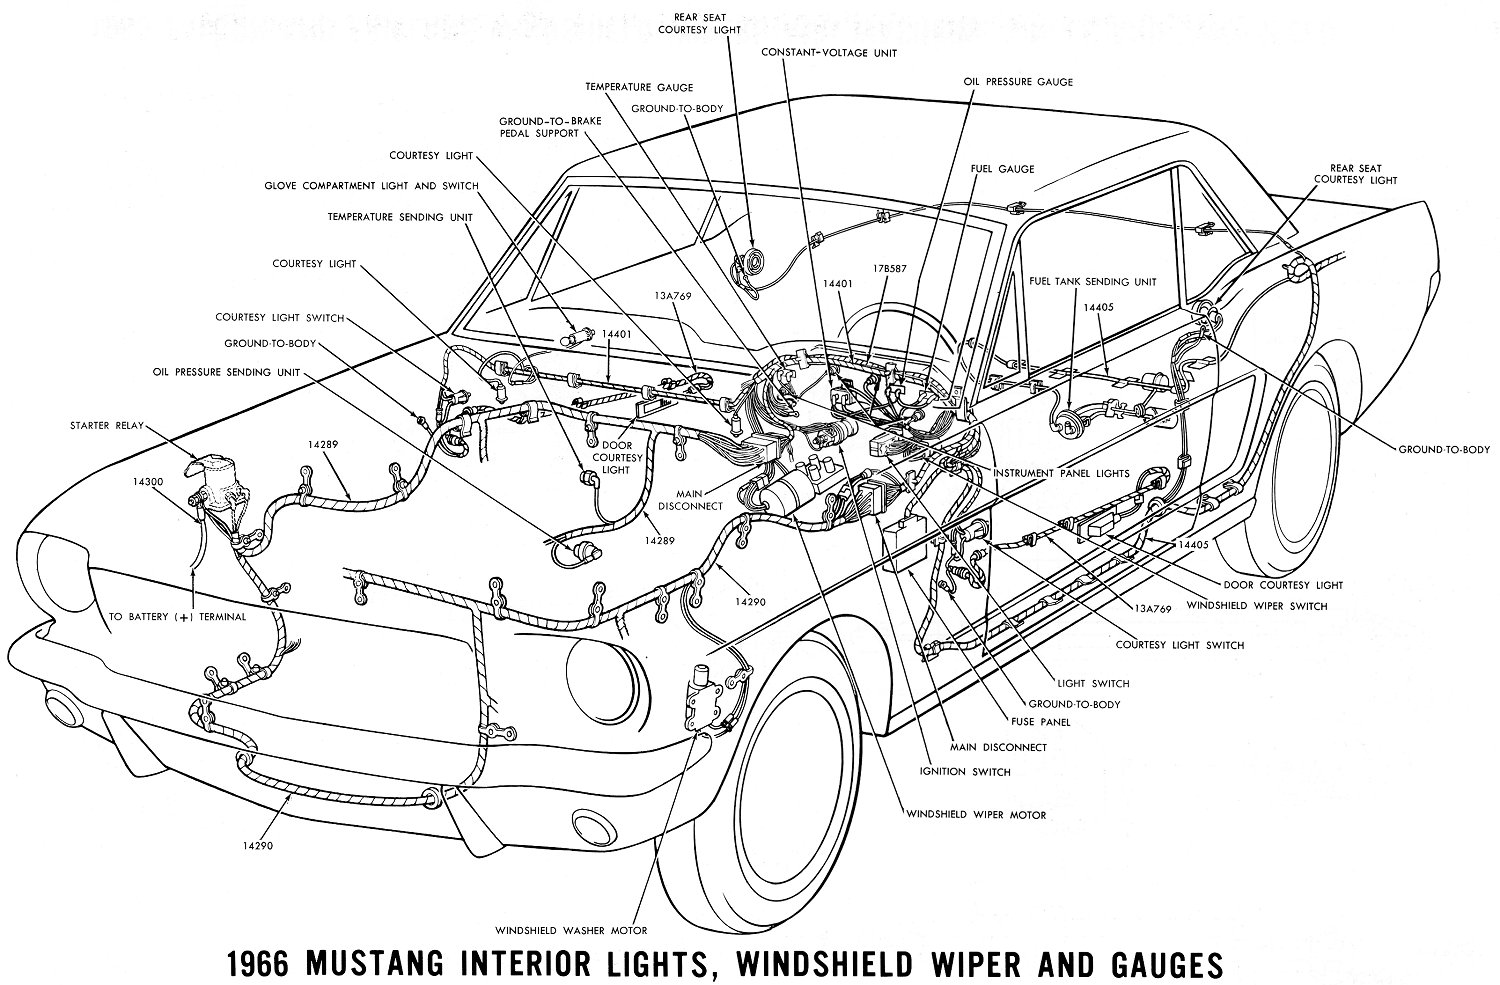 1966 mustang wiring diagrams average joe restoration rh  averagejoerestoration com 66 mustang wiring diagram fuse 66